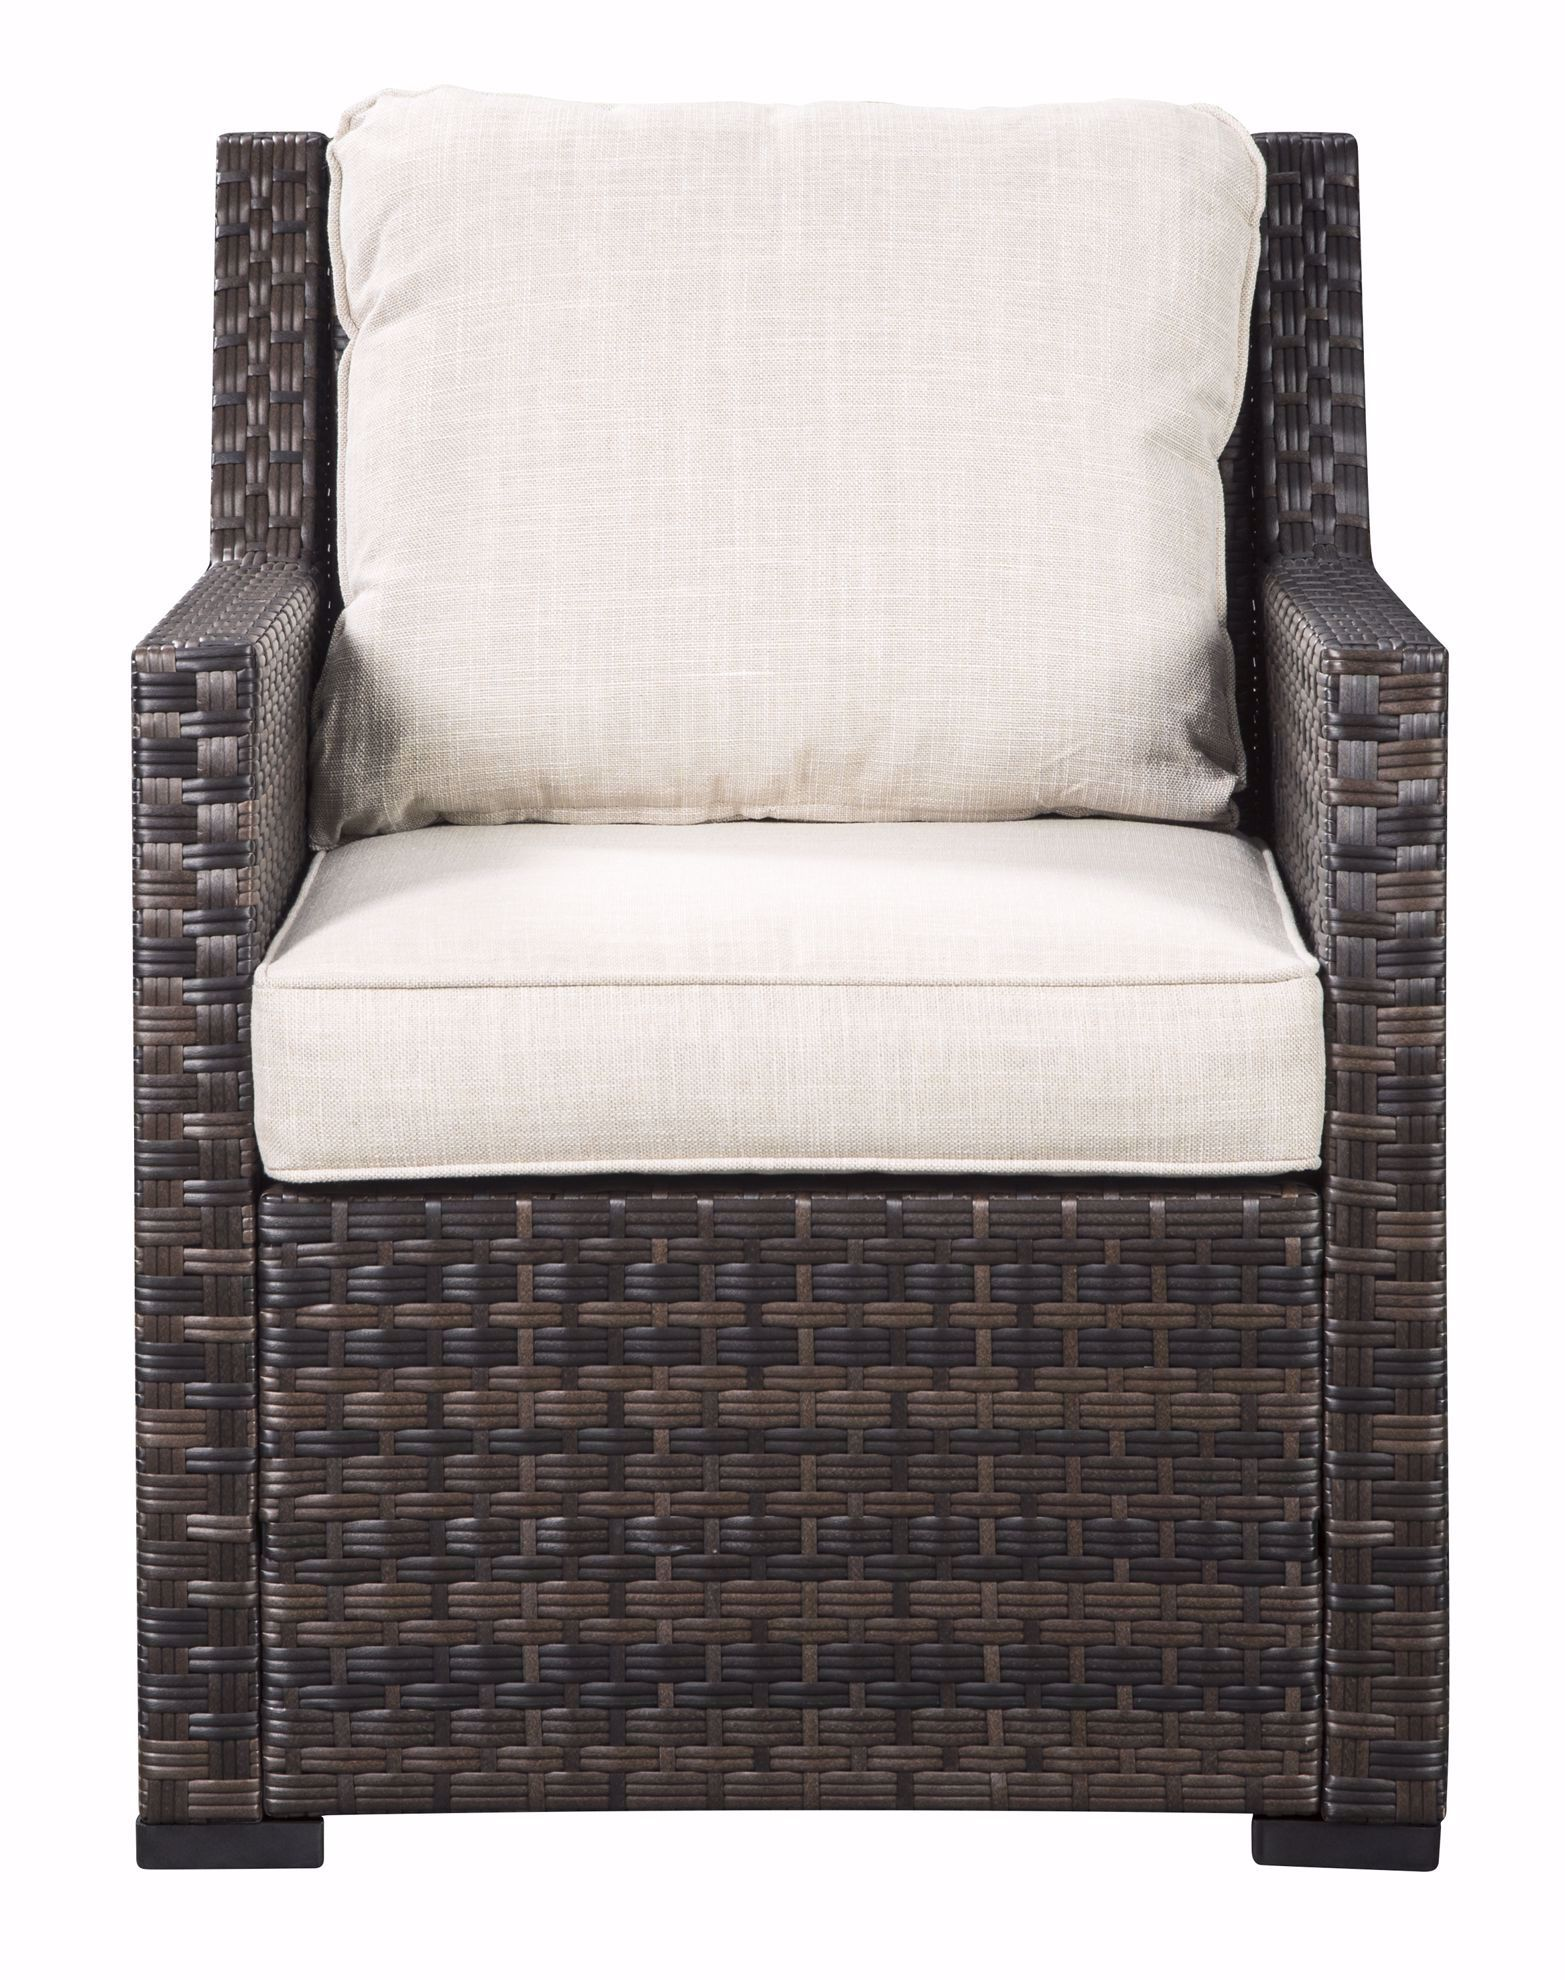 Picture of Easy Isle Cushion Lounge Chair